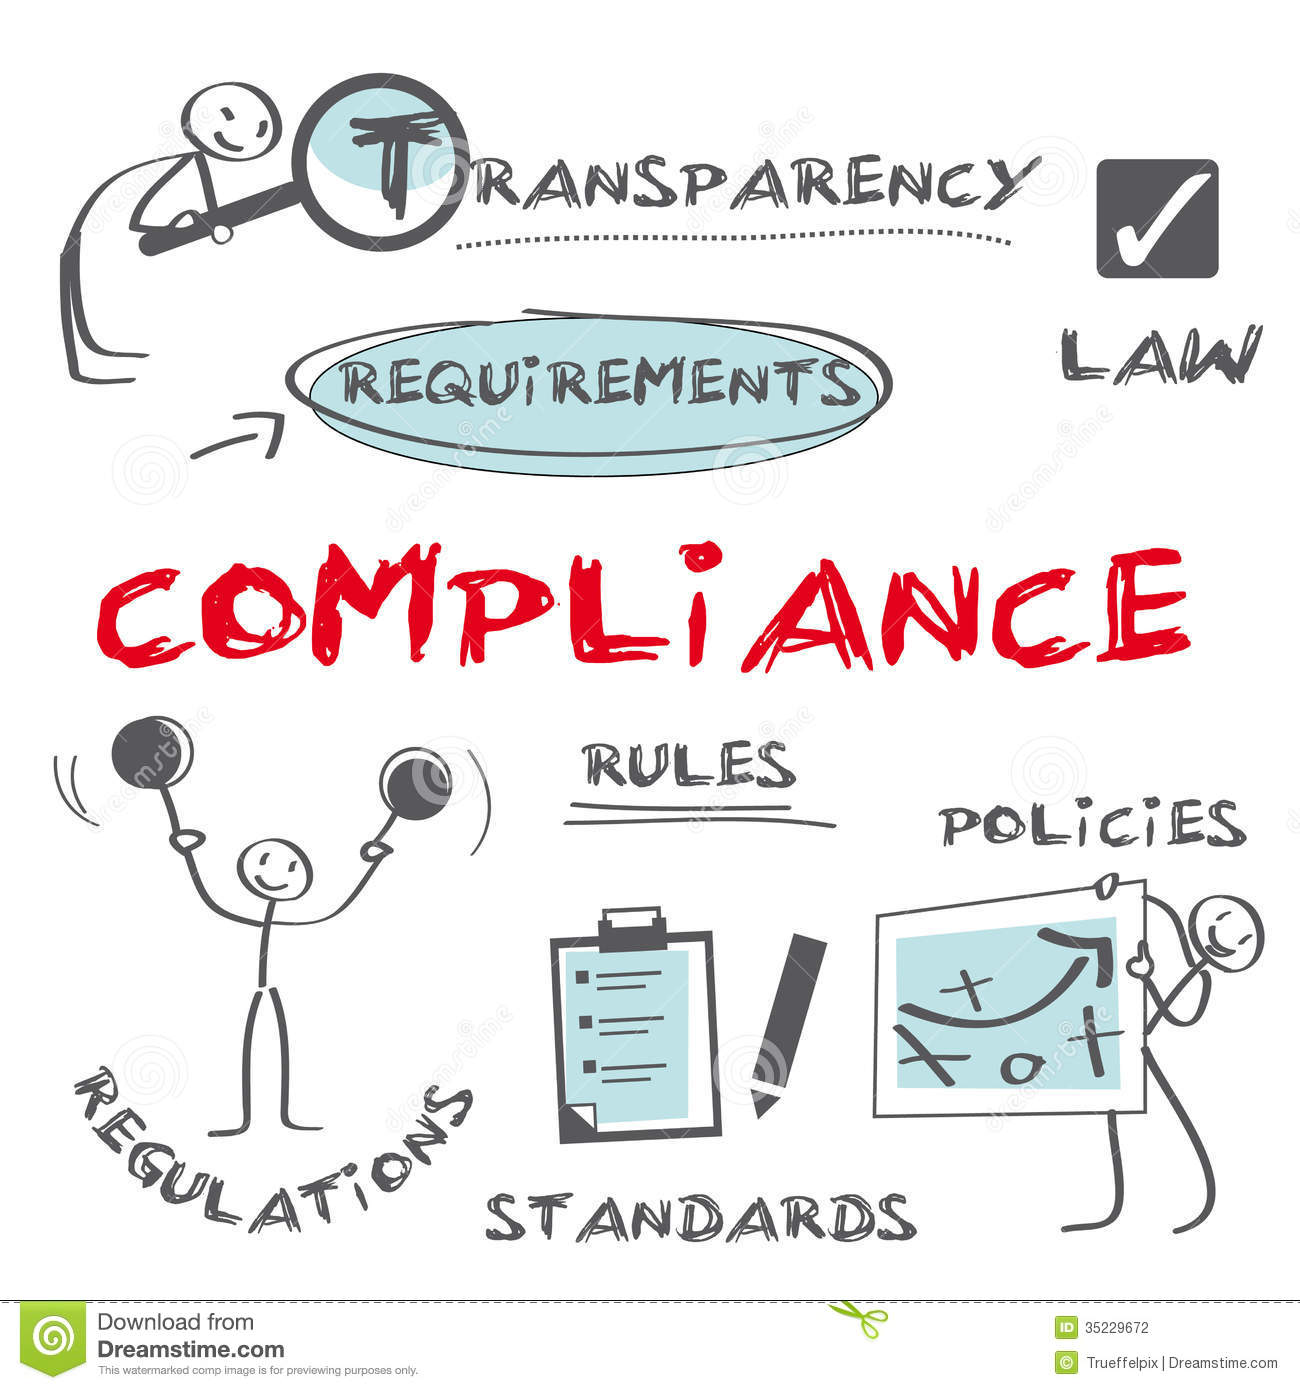 regulatory-compliance-infografic-means-conforming-to-rule-such-as-specif...